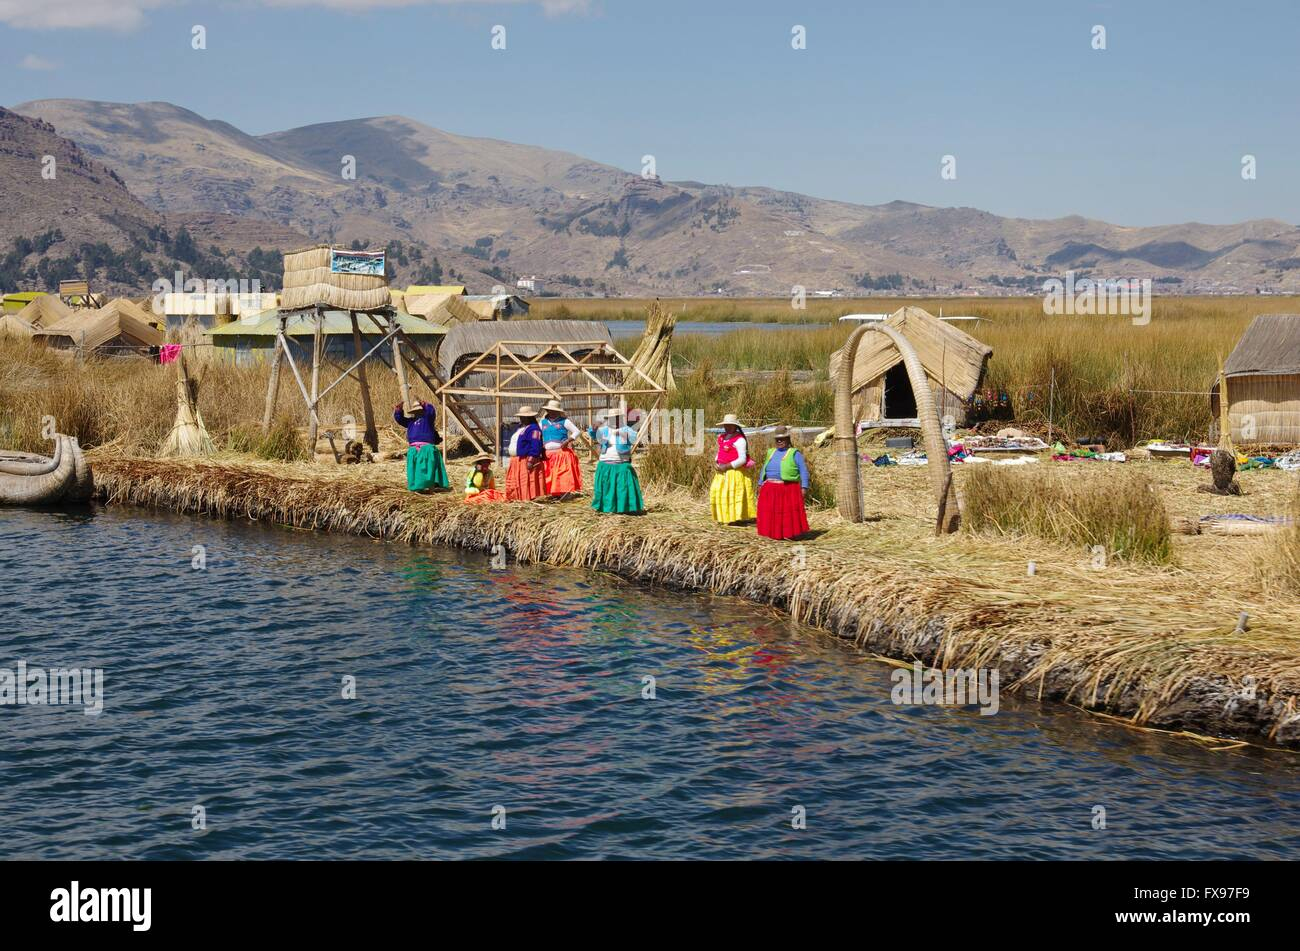 Women of the Uros people welcome tourists on their reed island in Lake Titicaca. Picture taken 2015-08-31. - Stock Image